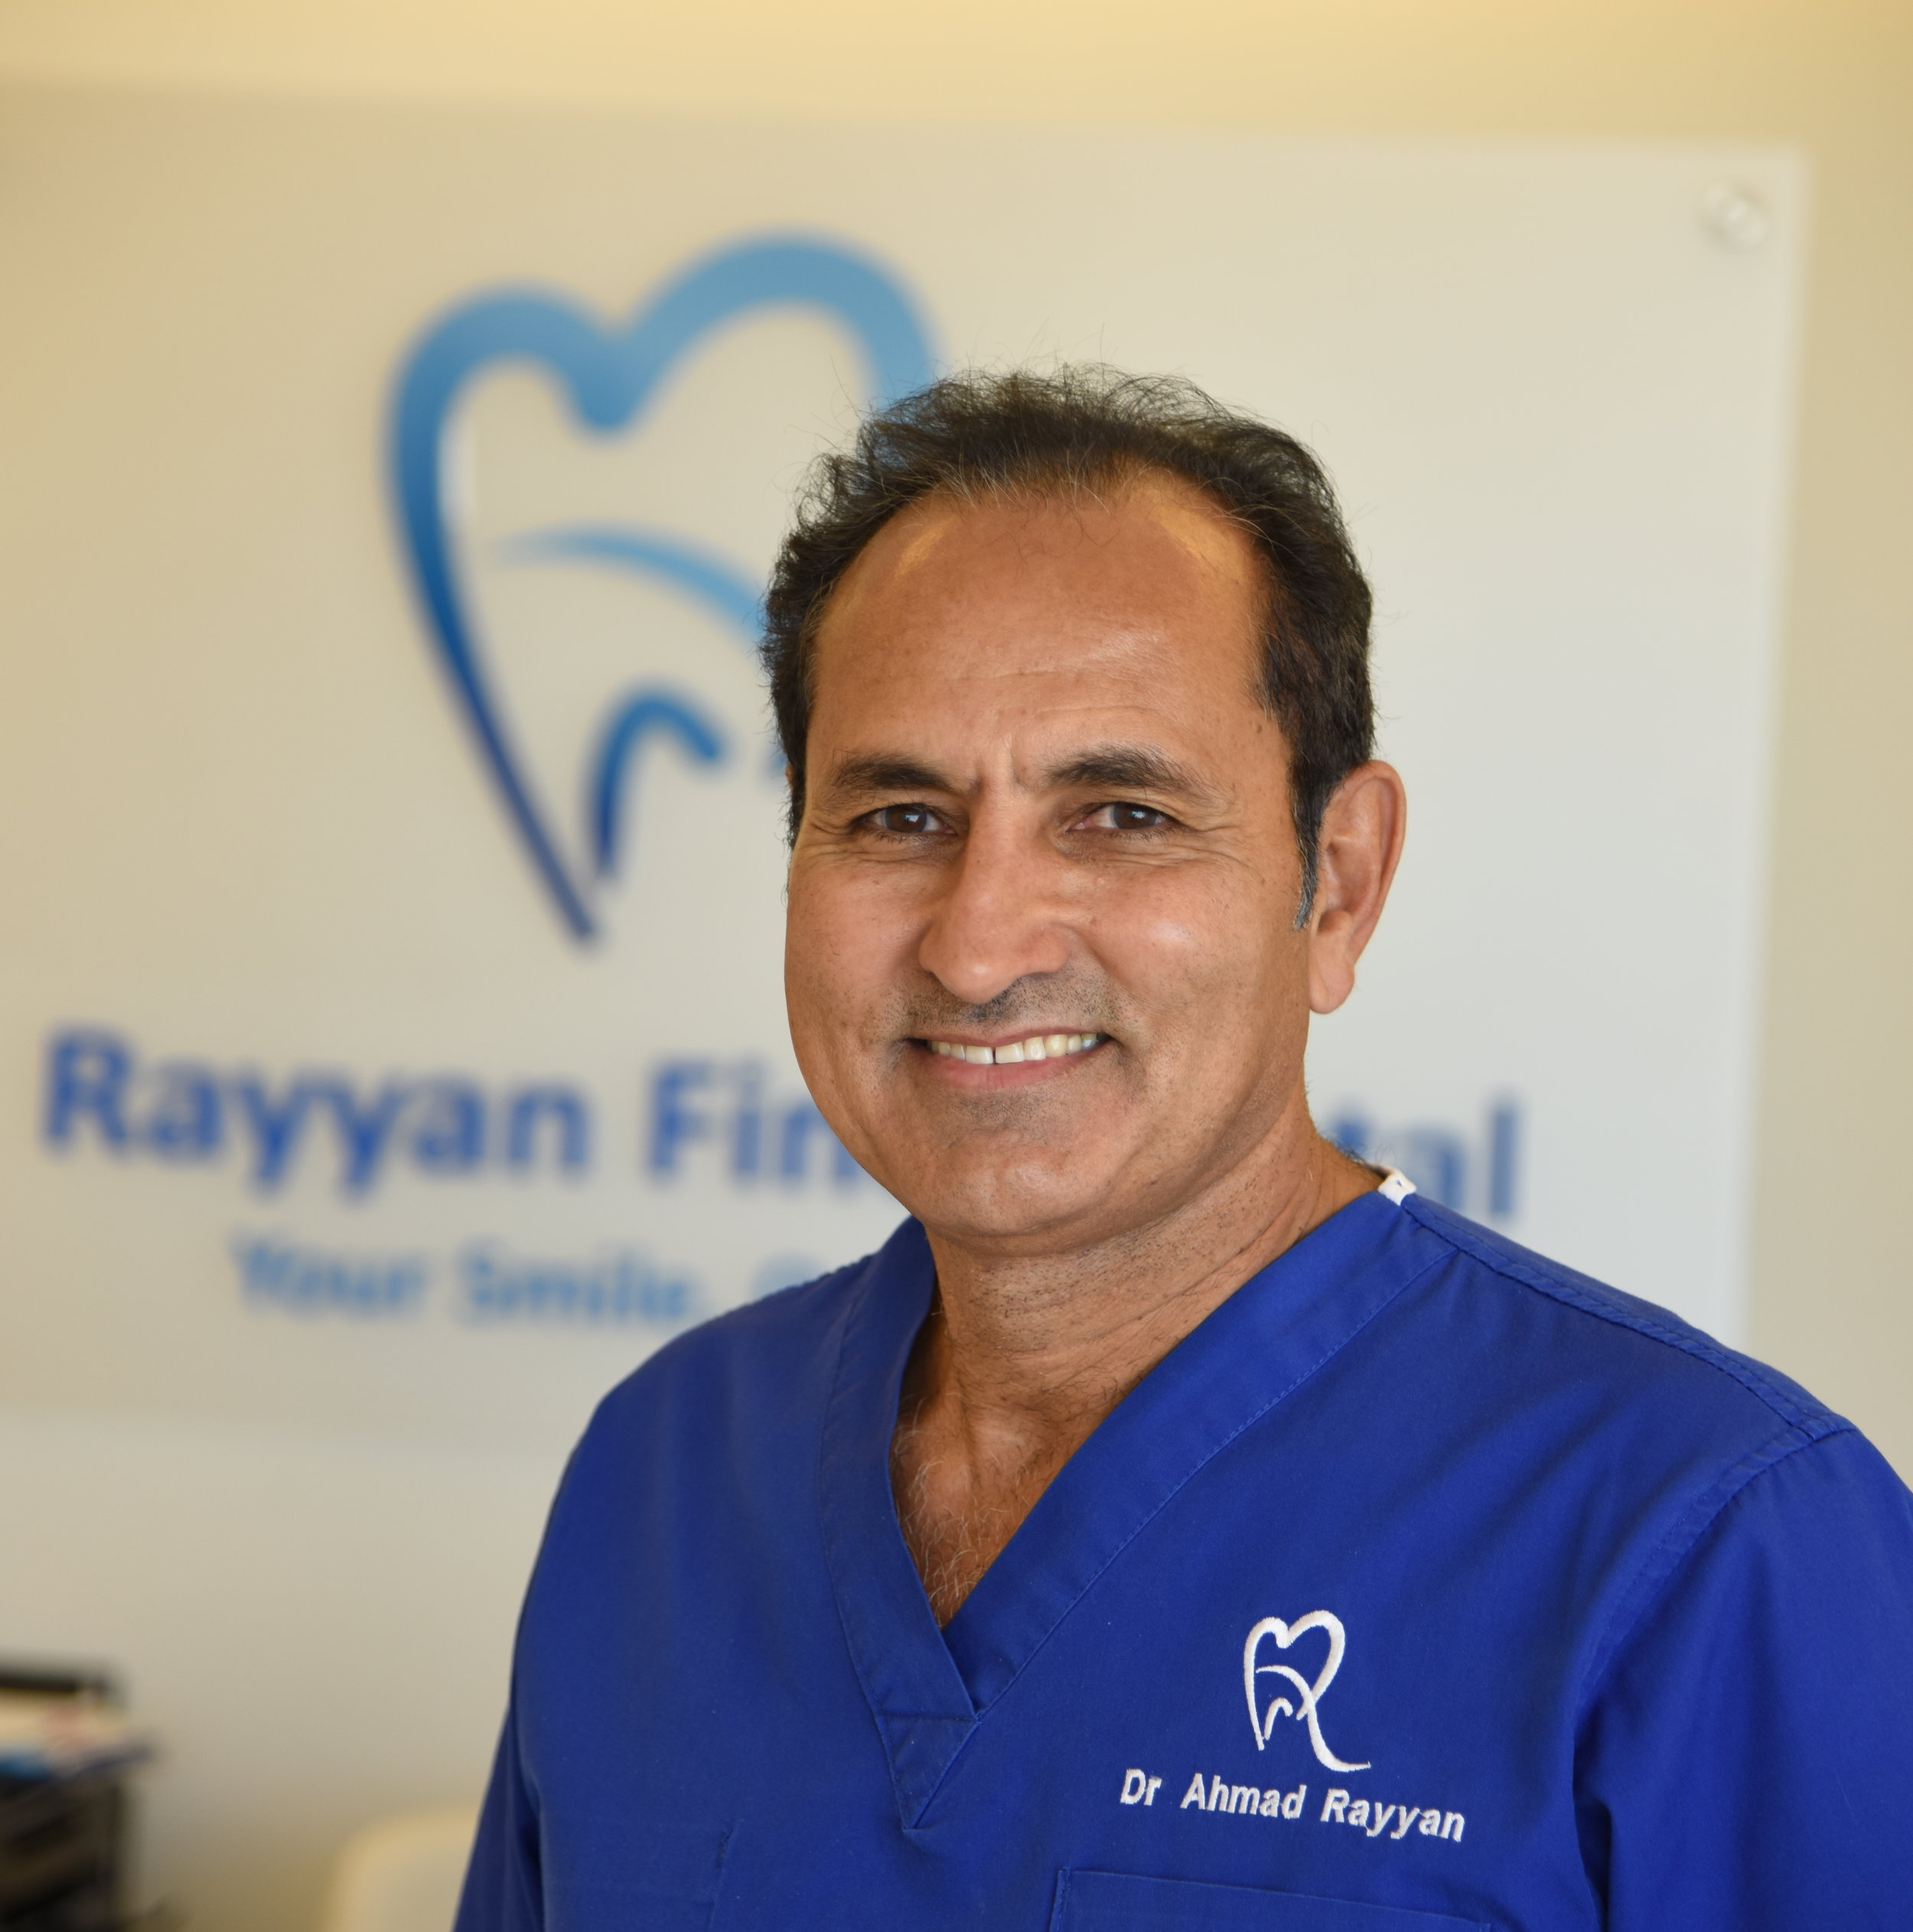 Dr. Ahmad Rayyan, BDS MScد. أحمدالريان - Specialist in Conservative and Prosthodontic Dentistry (London)Specialist in Implant Dentistry (Germany)(أختصاصي العلاج التحفظي و تركيب والأسنان (لندن(اختصاصي زراعة الأسنان (المانياDr. Ahmad Rayyan started his career 30 years ago after rigorous studies and training at The Eastman Dental Institute in the University College London. He taught undergraduate and post-graduate students at the University of Jordan, and frequently attends and presents at international conferences in the fields of Conservative, Prosthodontic and Implant Dentistry.